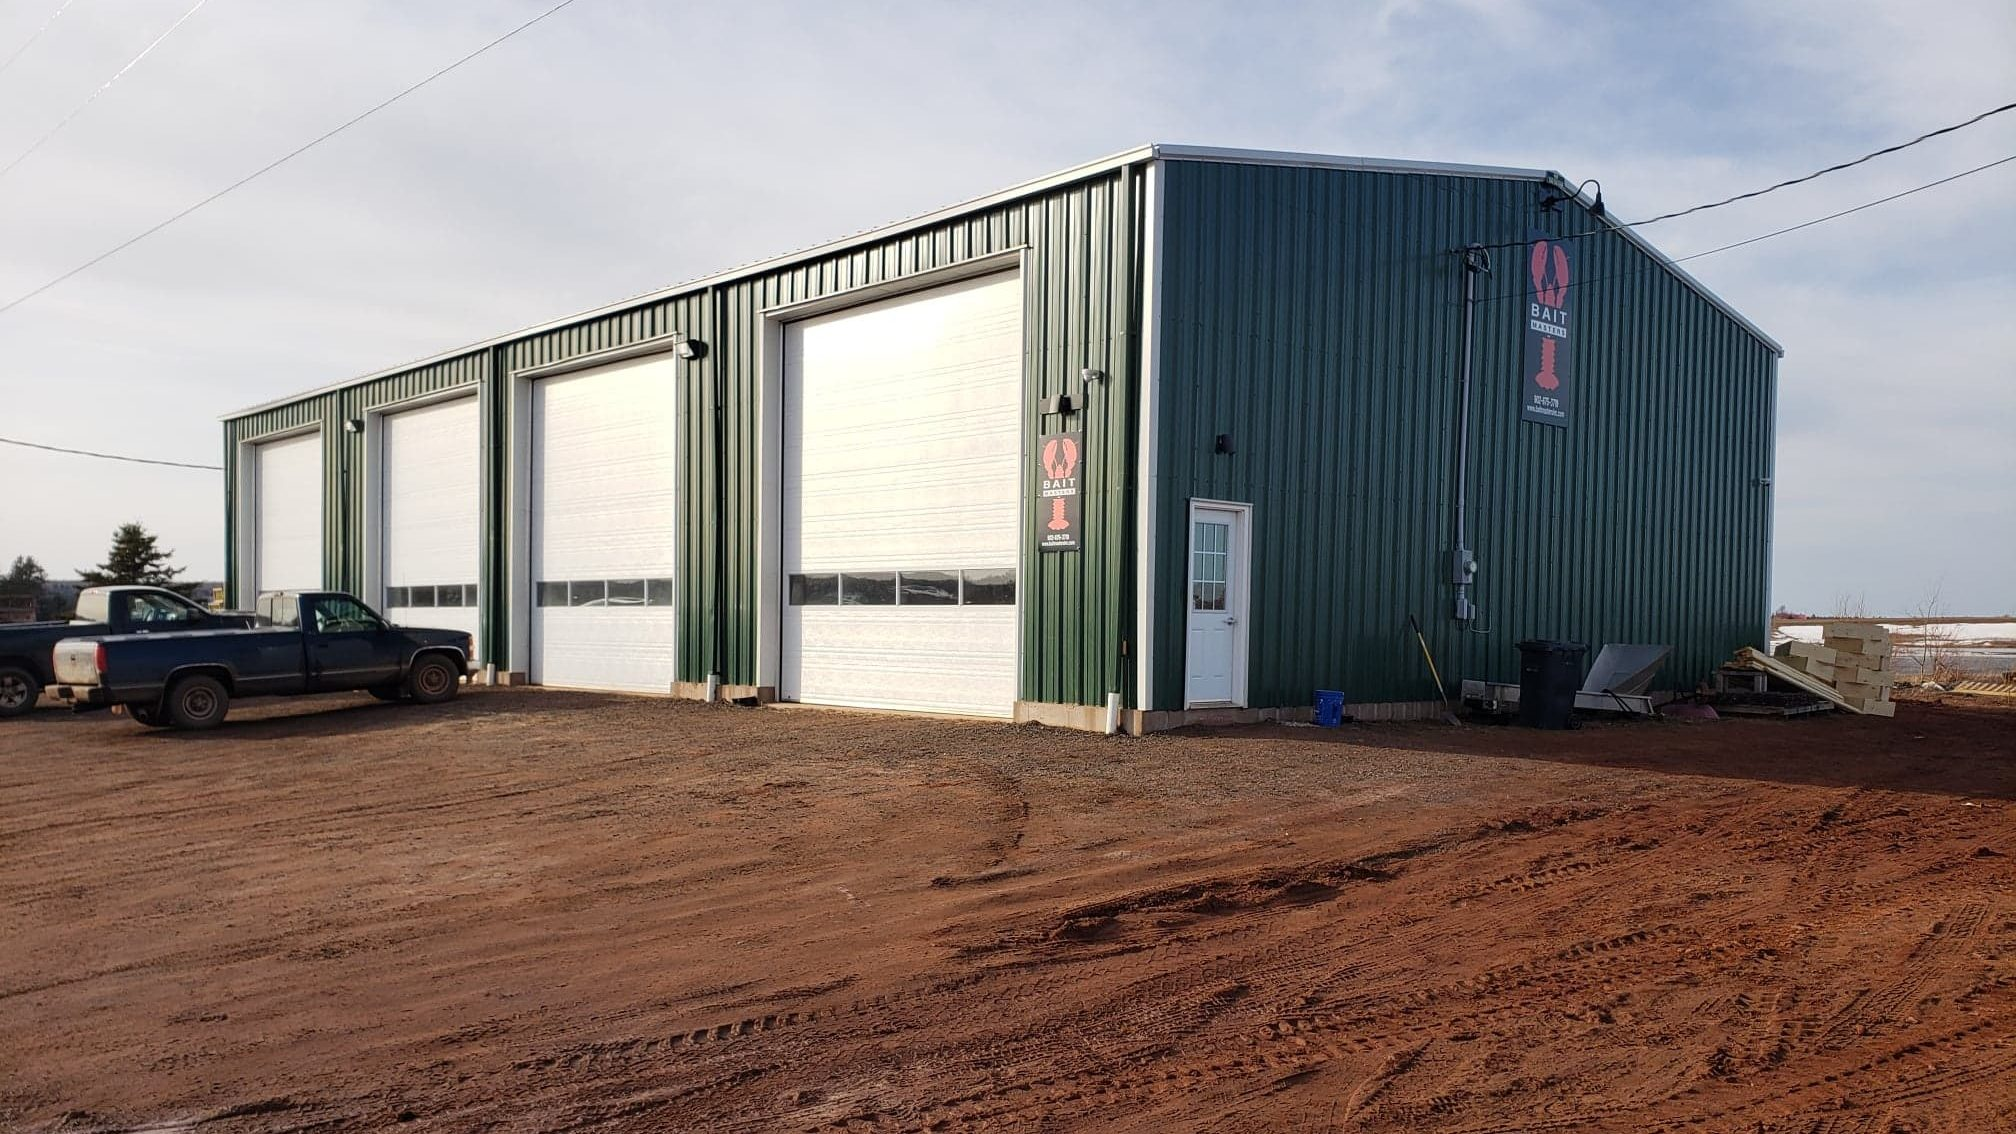 Our P.E.I. facility. A long, green building with white doors on red dirt with trucks parked outside.